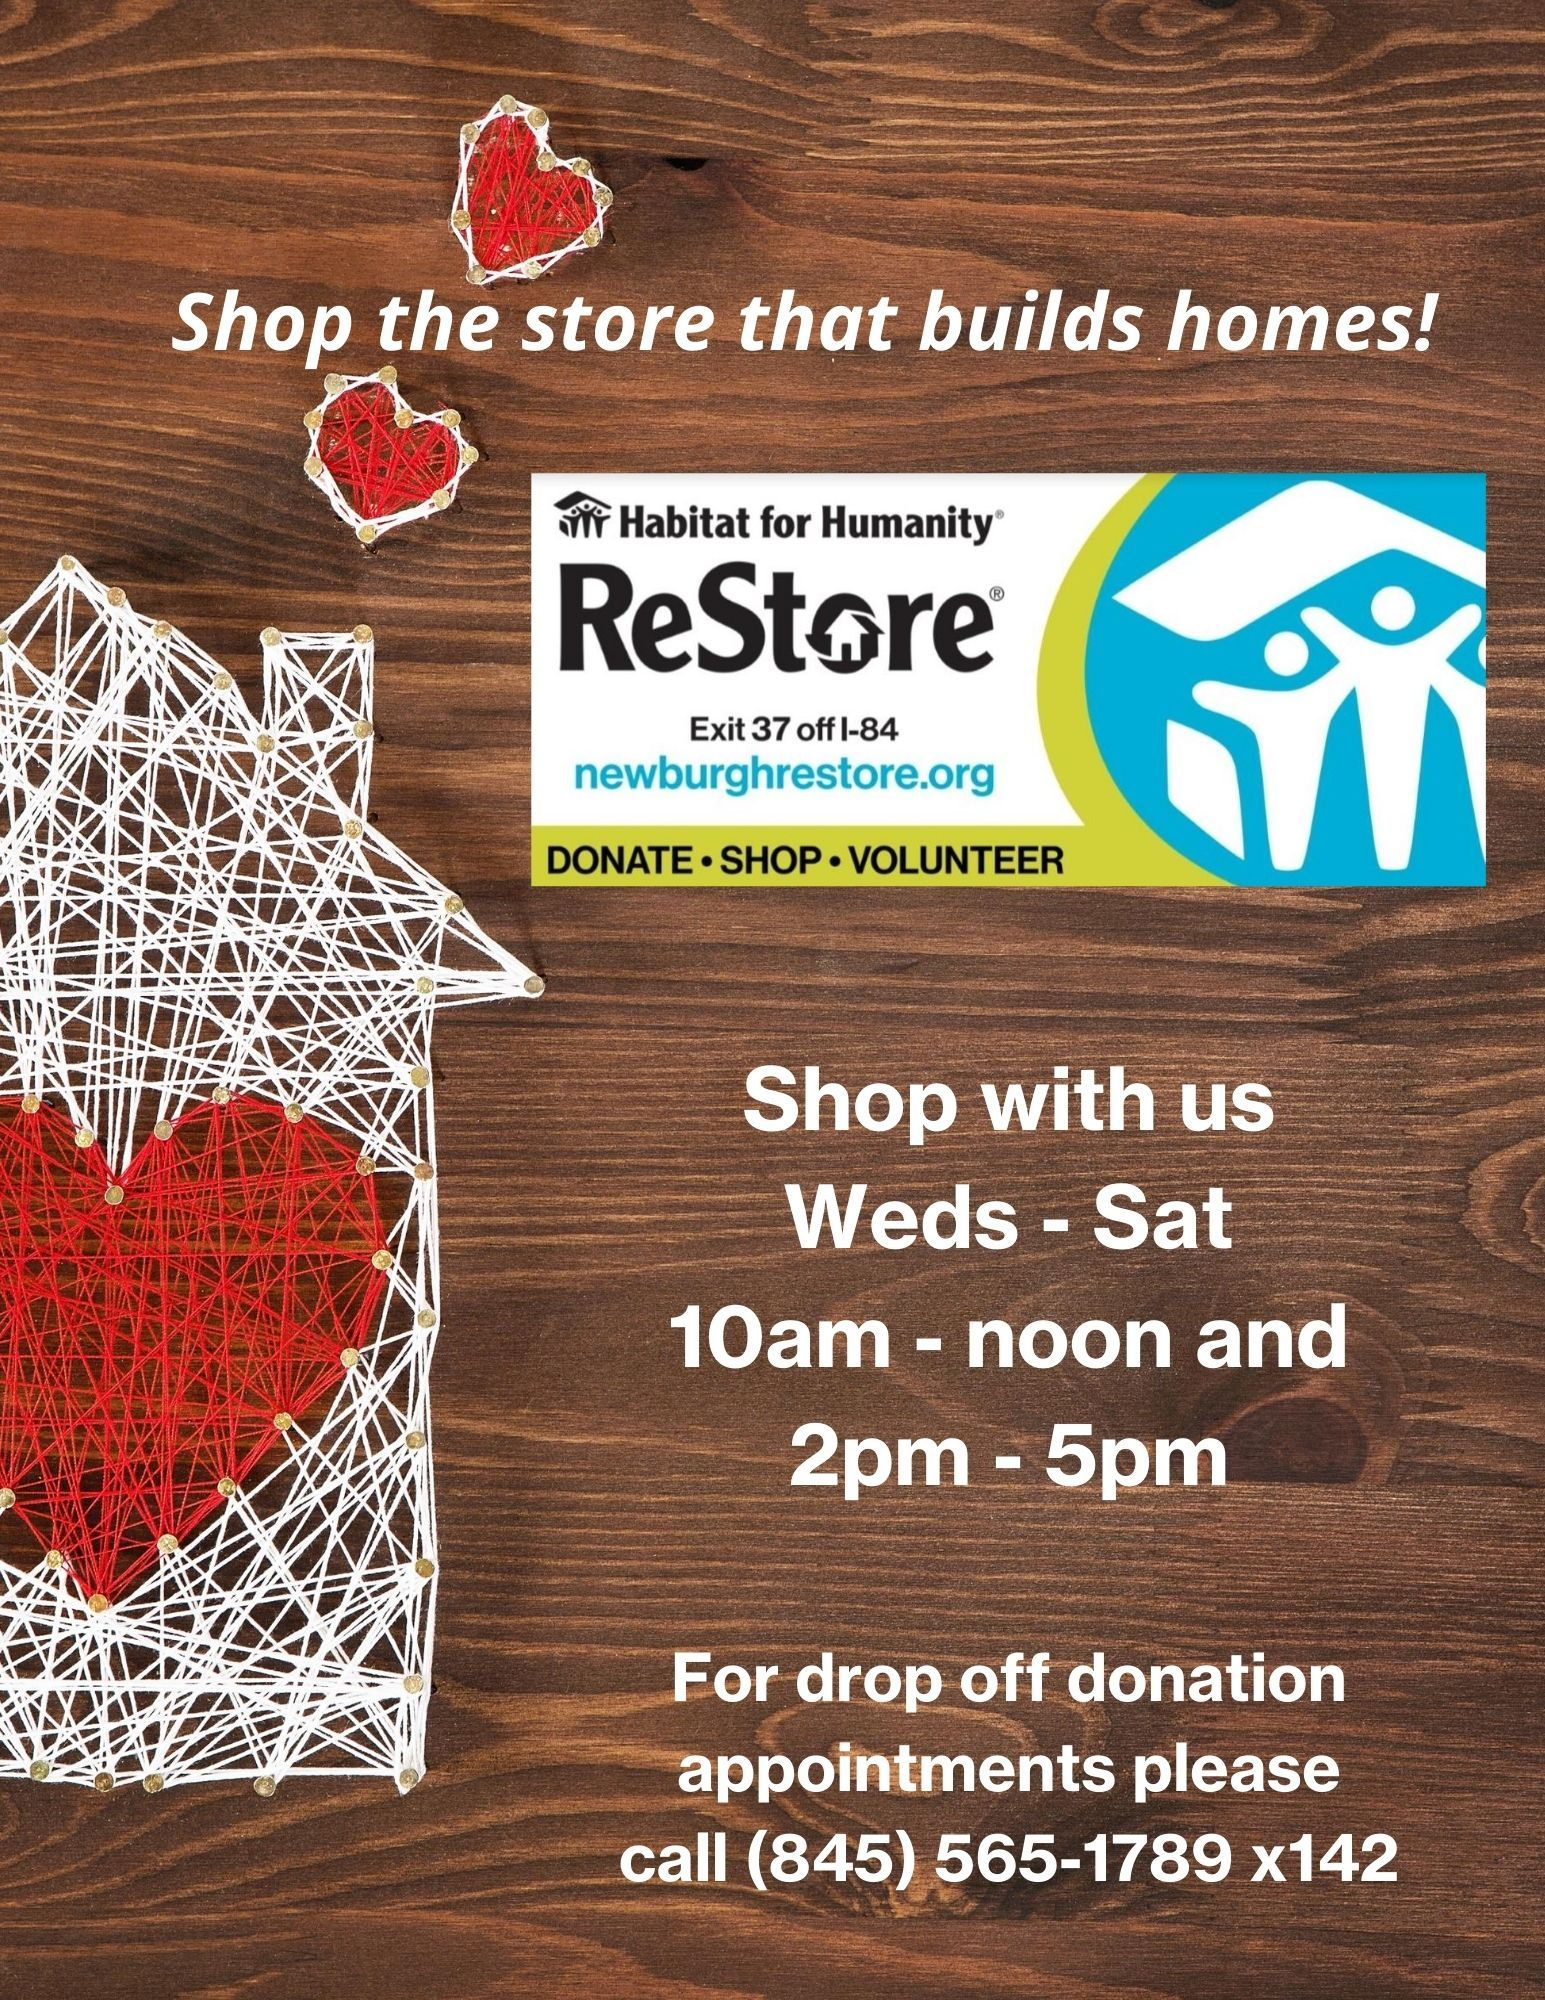 Shop the store that builds homes!